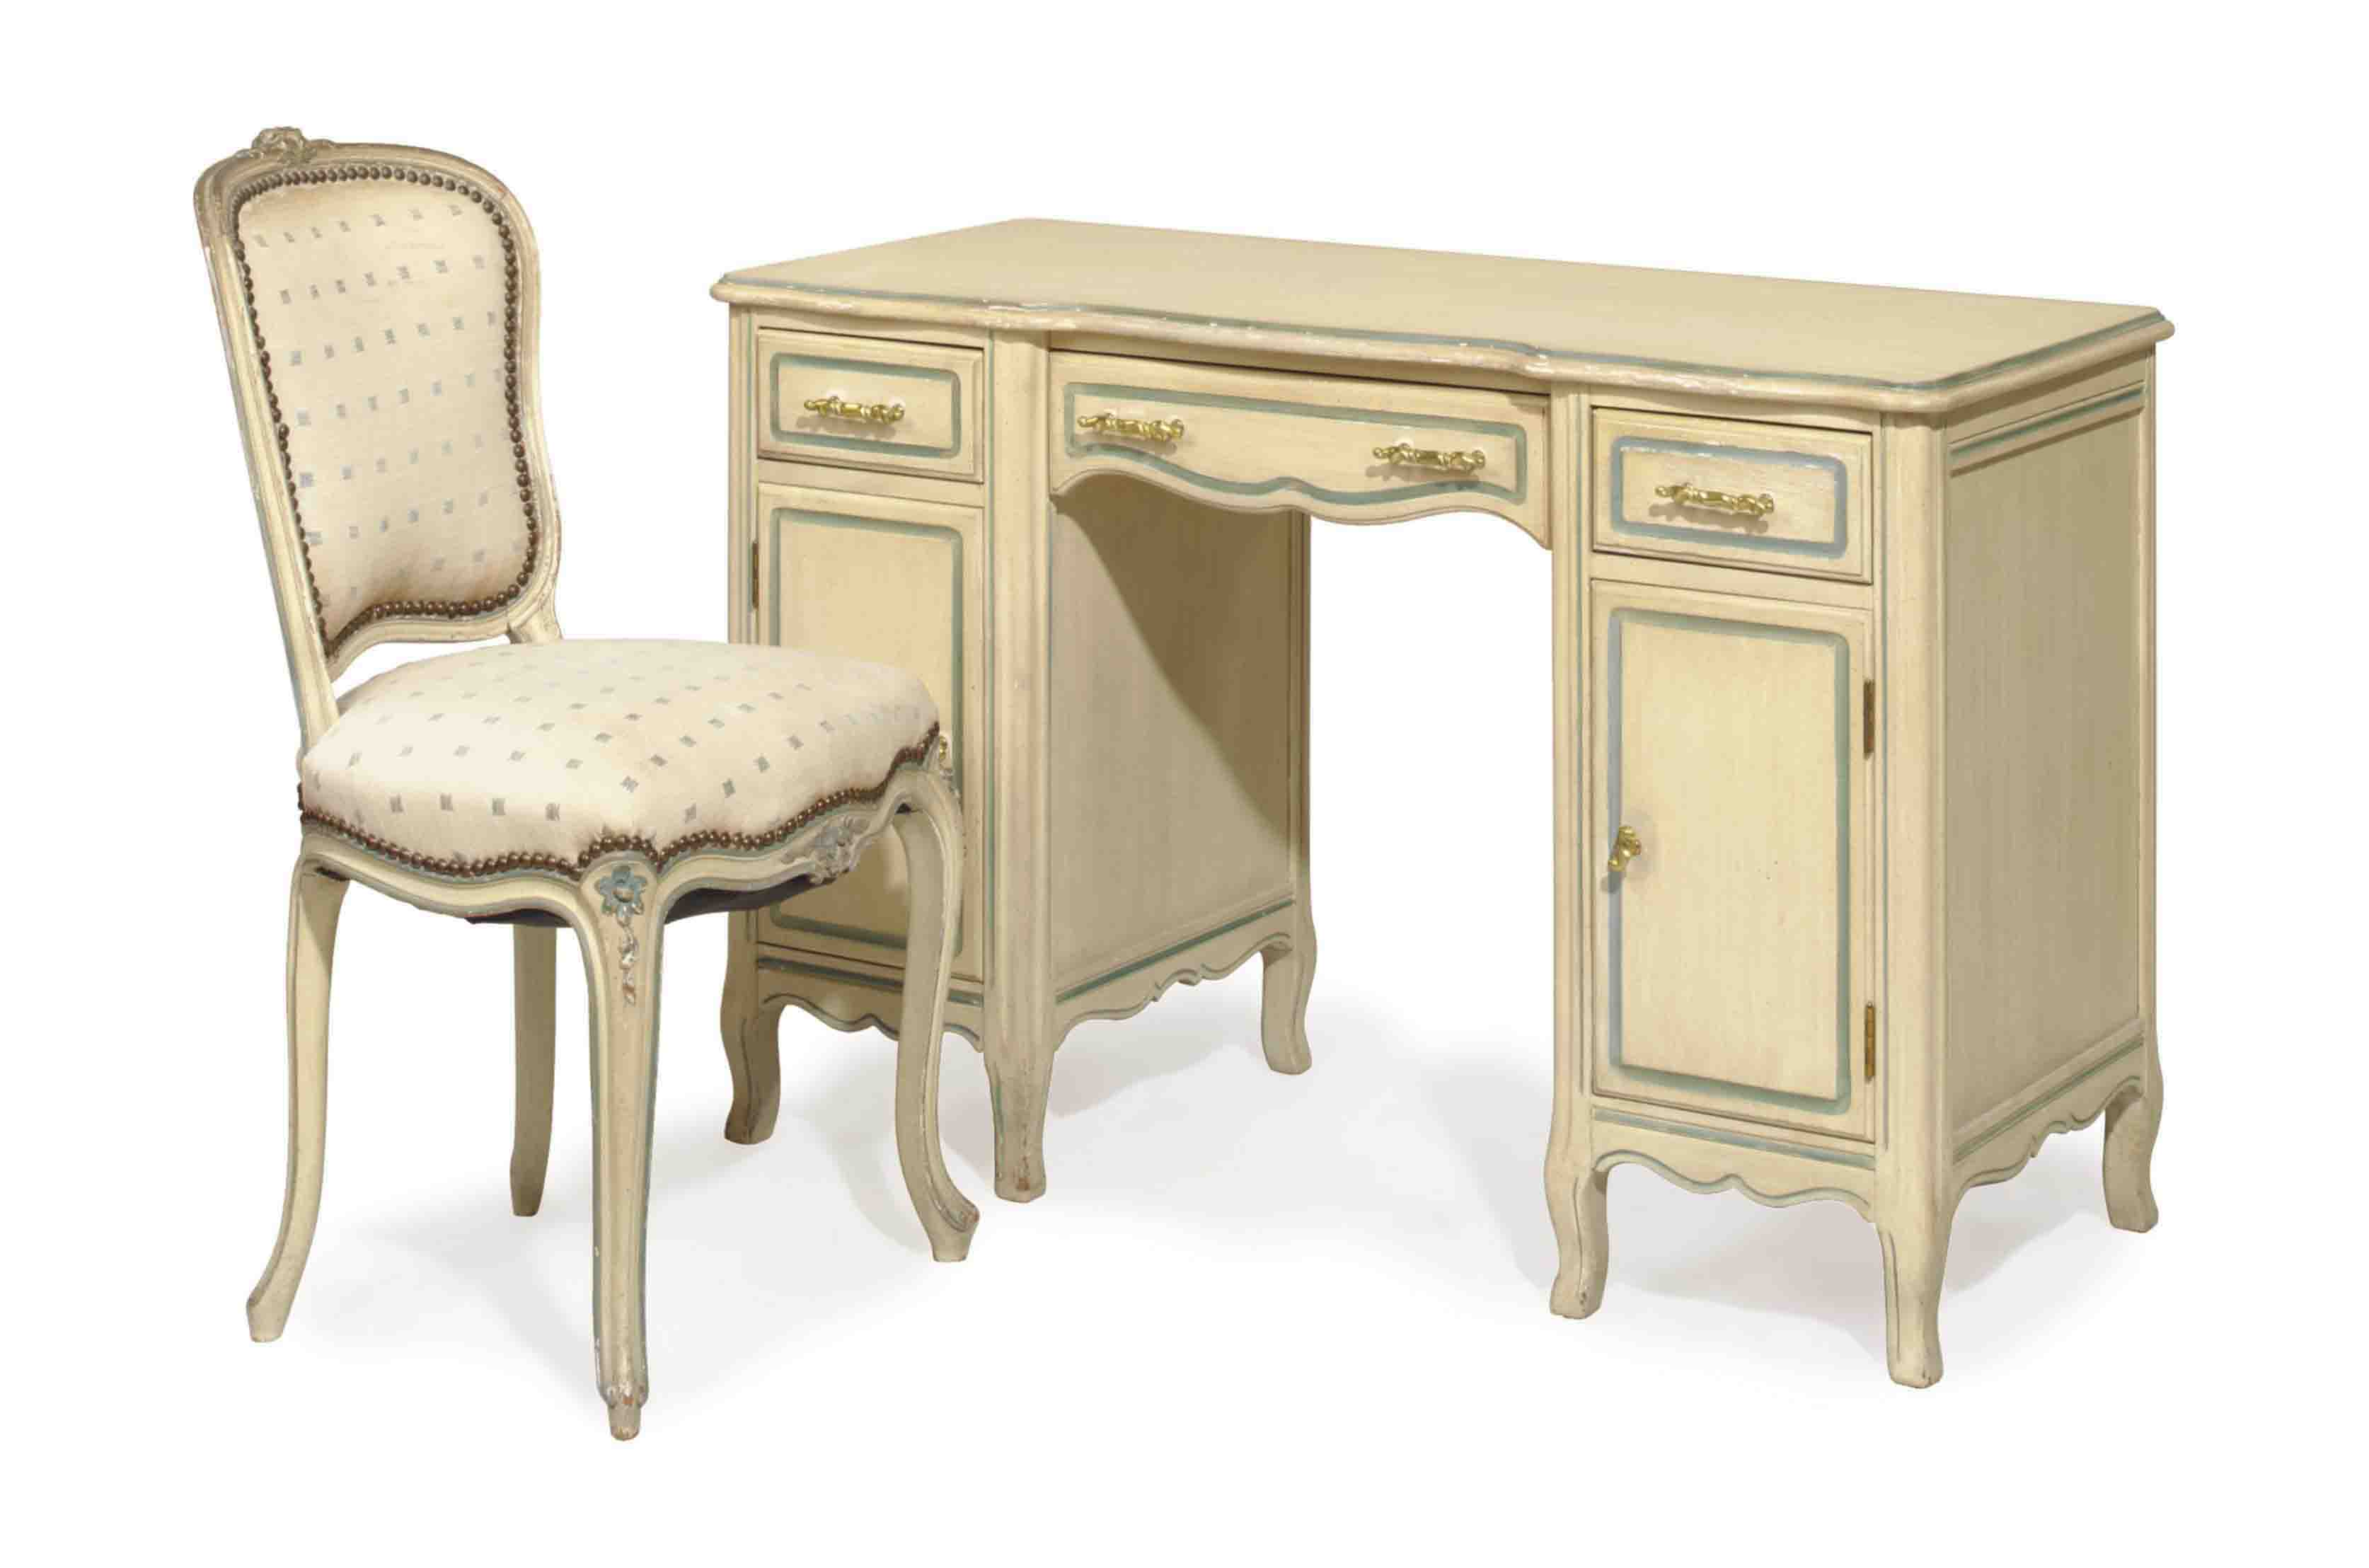 A WHITE PAINTED DRESSING TABLE AND CHAIR,